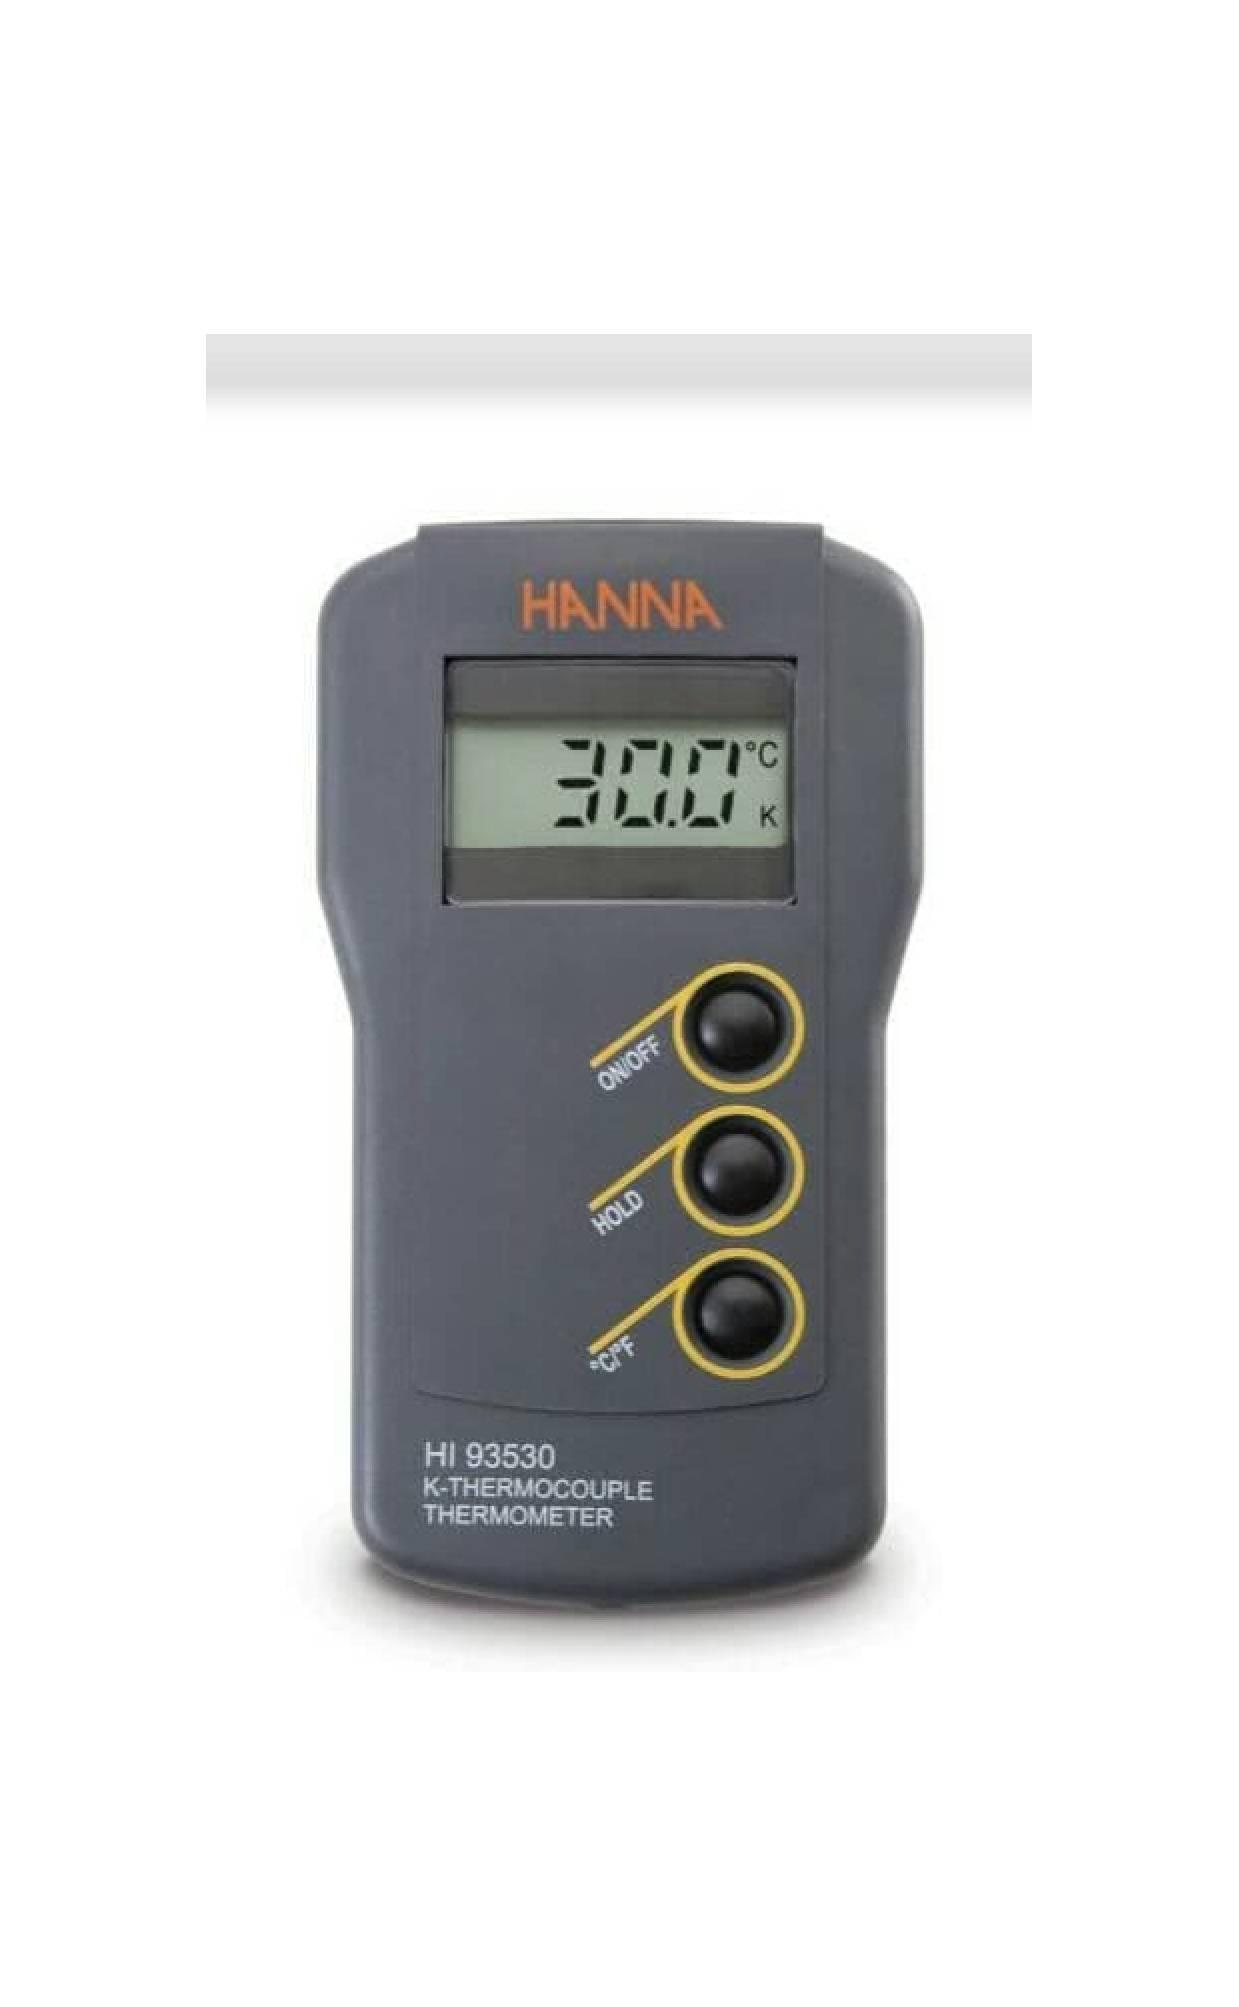 HANNA HI 93530 K-Type Thermocouple Thermometer w/Probe HI 766E2